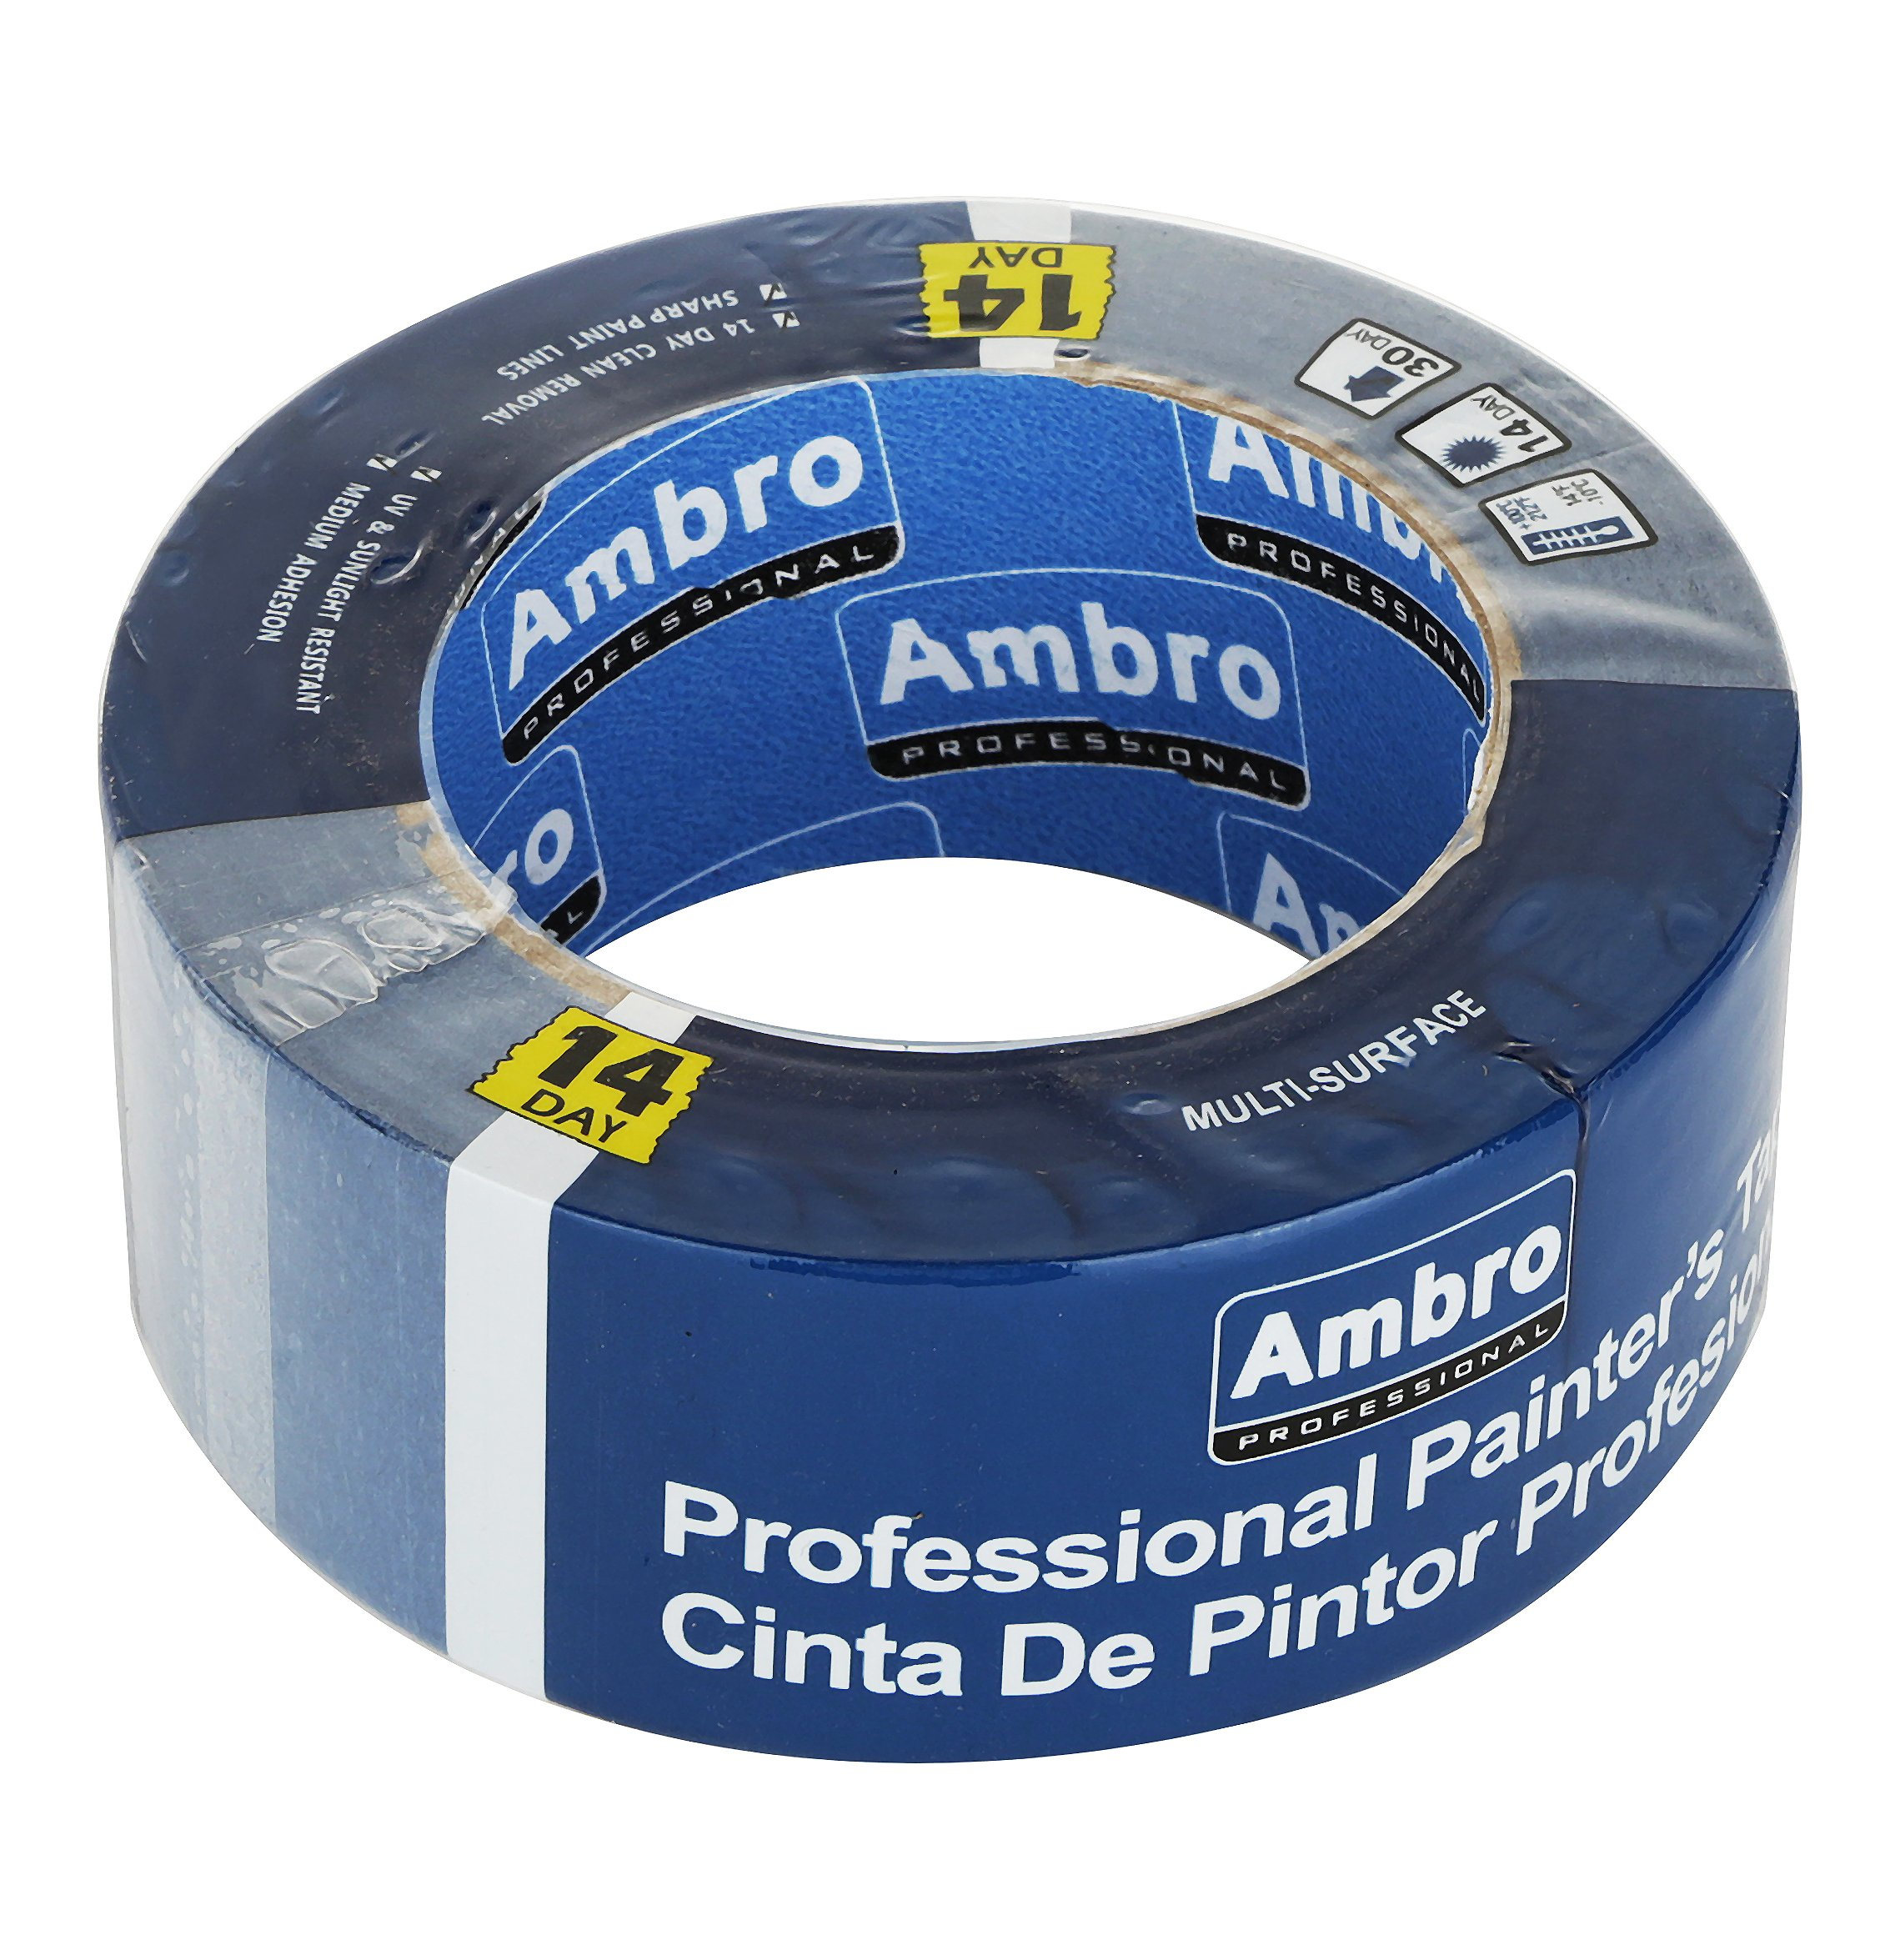 Ambro Professional Painters Tape Multi Surface Use (Blue) (12 pack, 2 inches x 60 yds) by Ambro (Image #2)